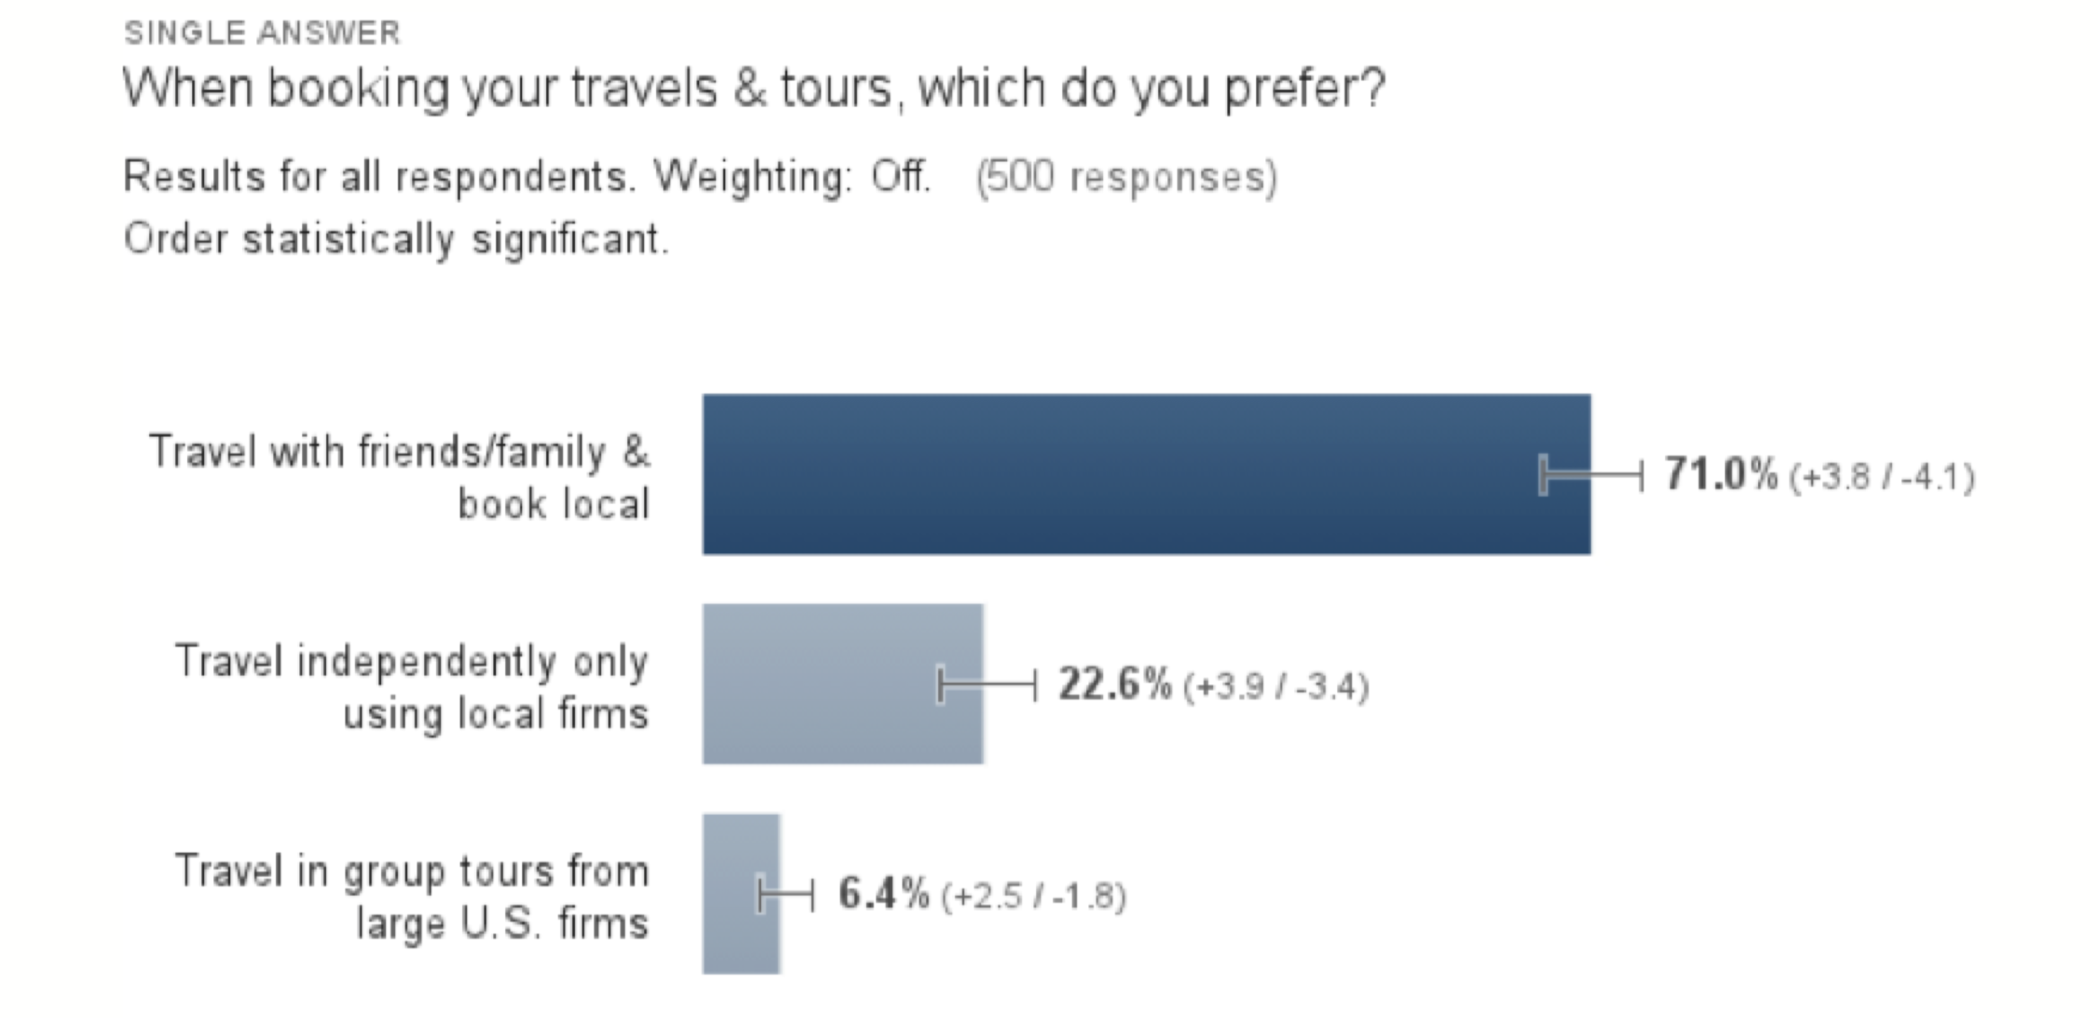 Quantitative research confirms most people prefer to travel with friends and family.